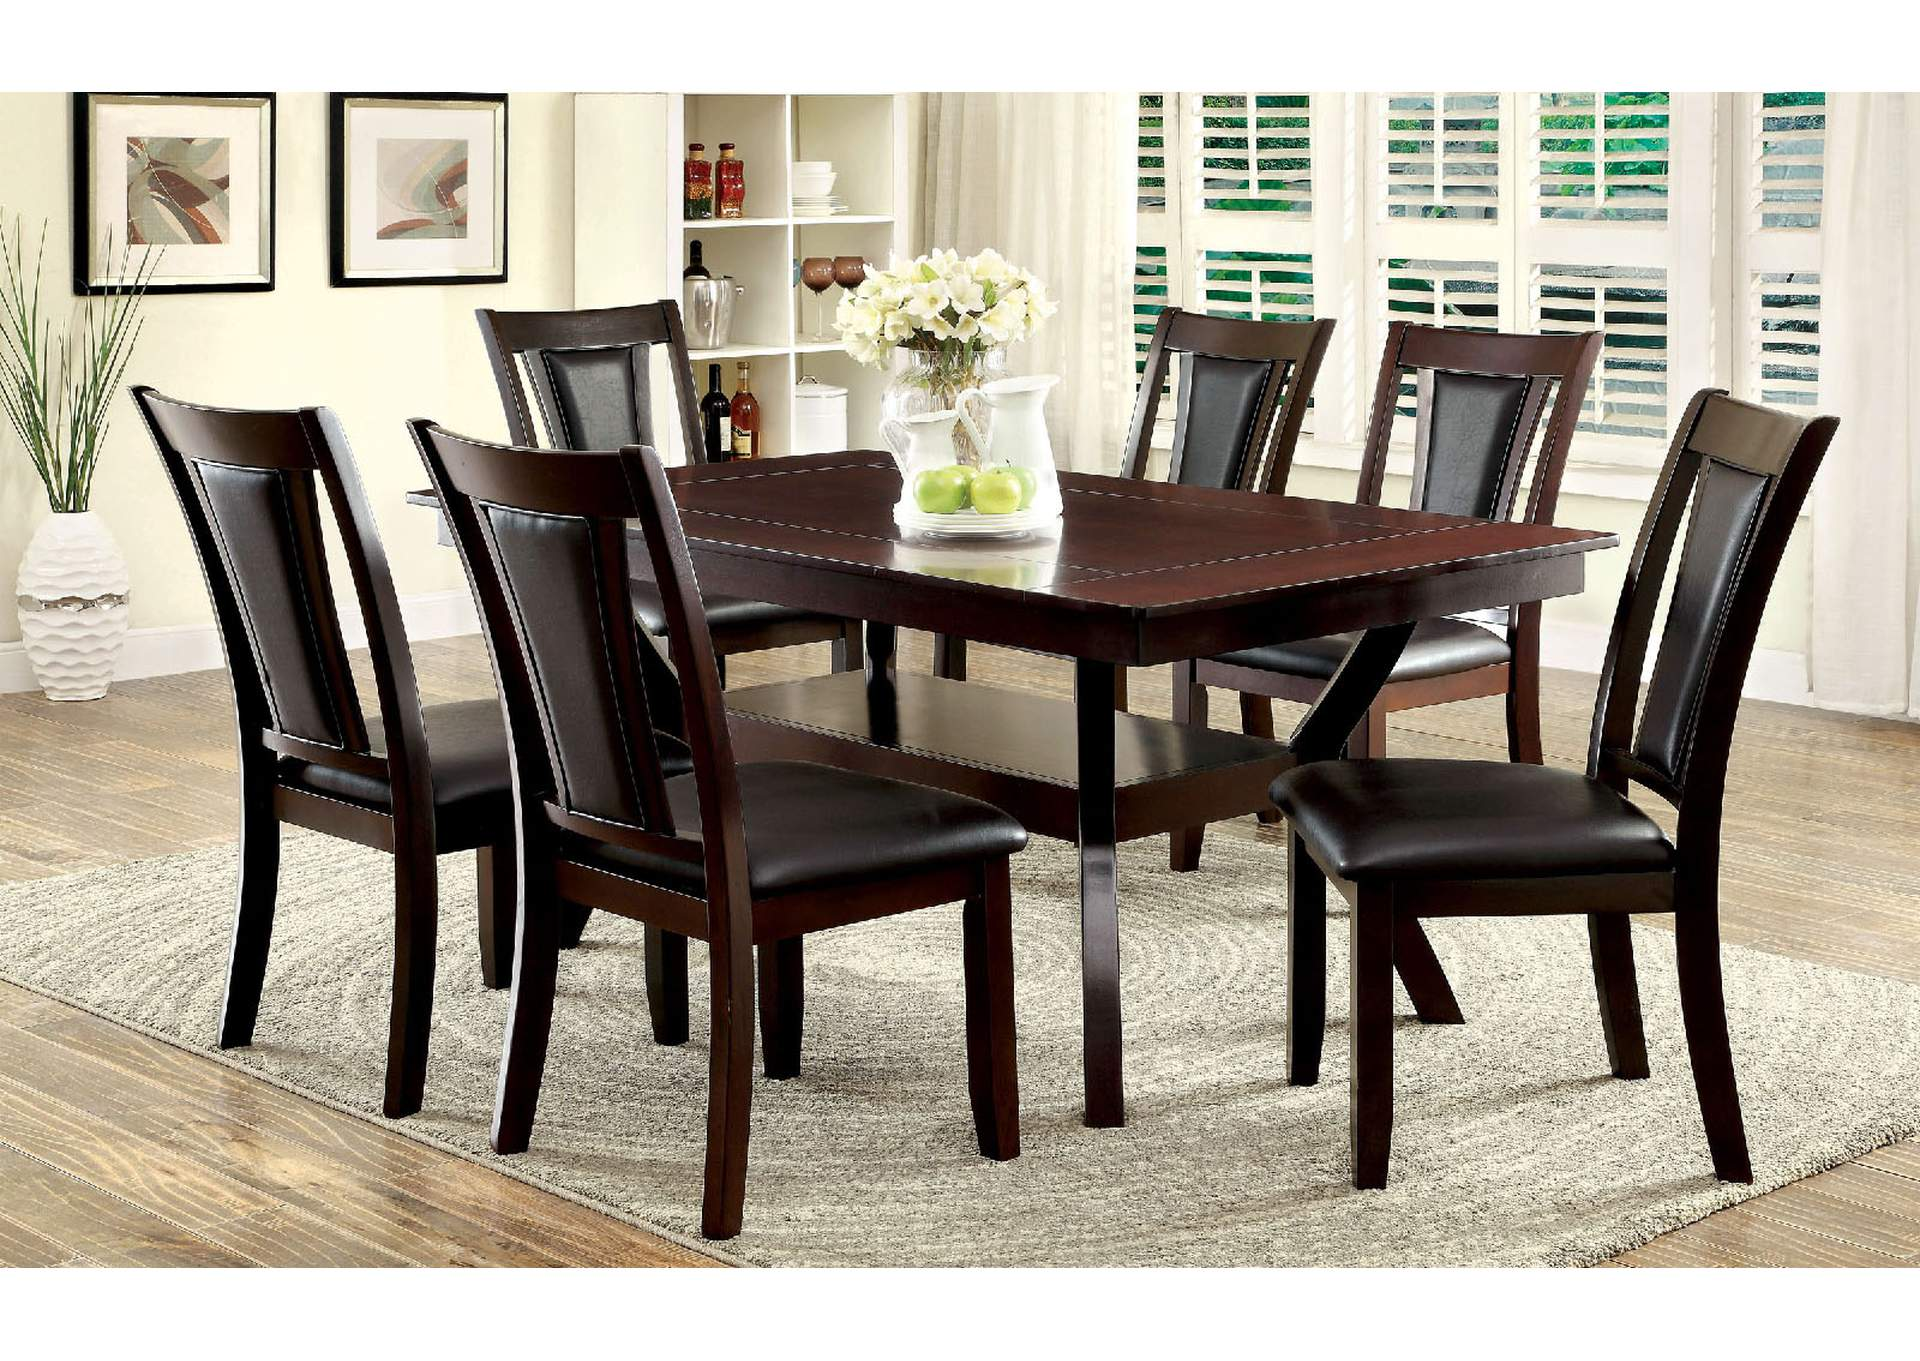 Marble Dining Table And 6 Chairs: Dinettes Plus Brent Faux Marble Insert Top Dining Table W